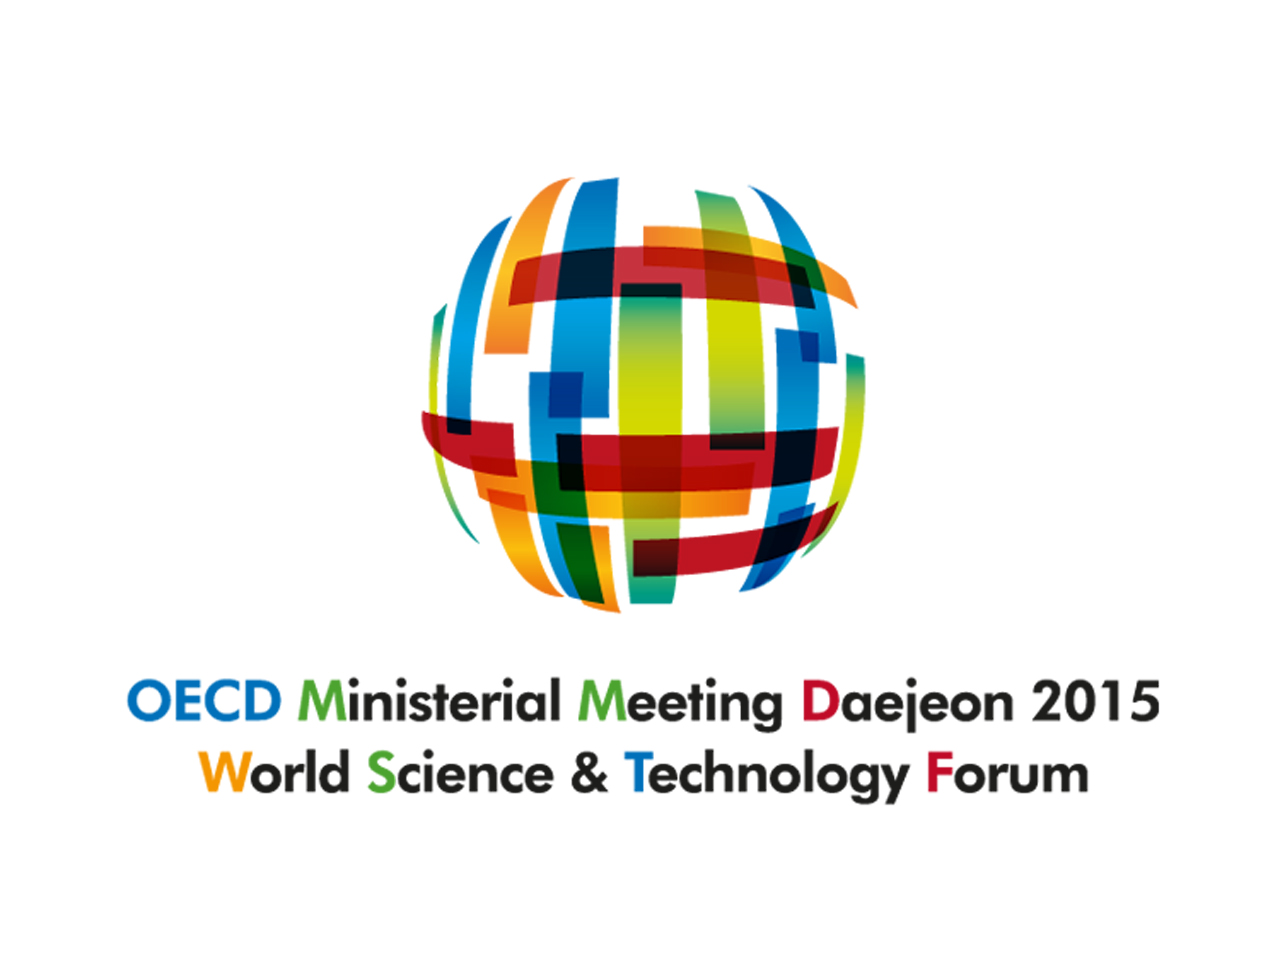 Winy Maas to present at the OECD's World Science and Technology Forum in South Korea on October 19th